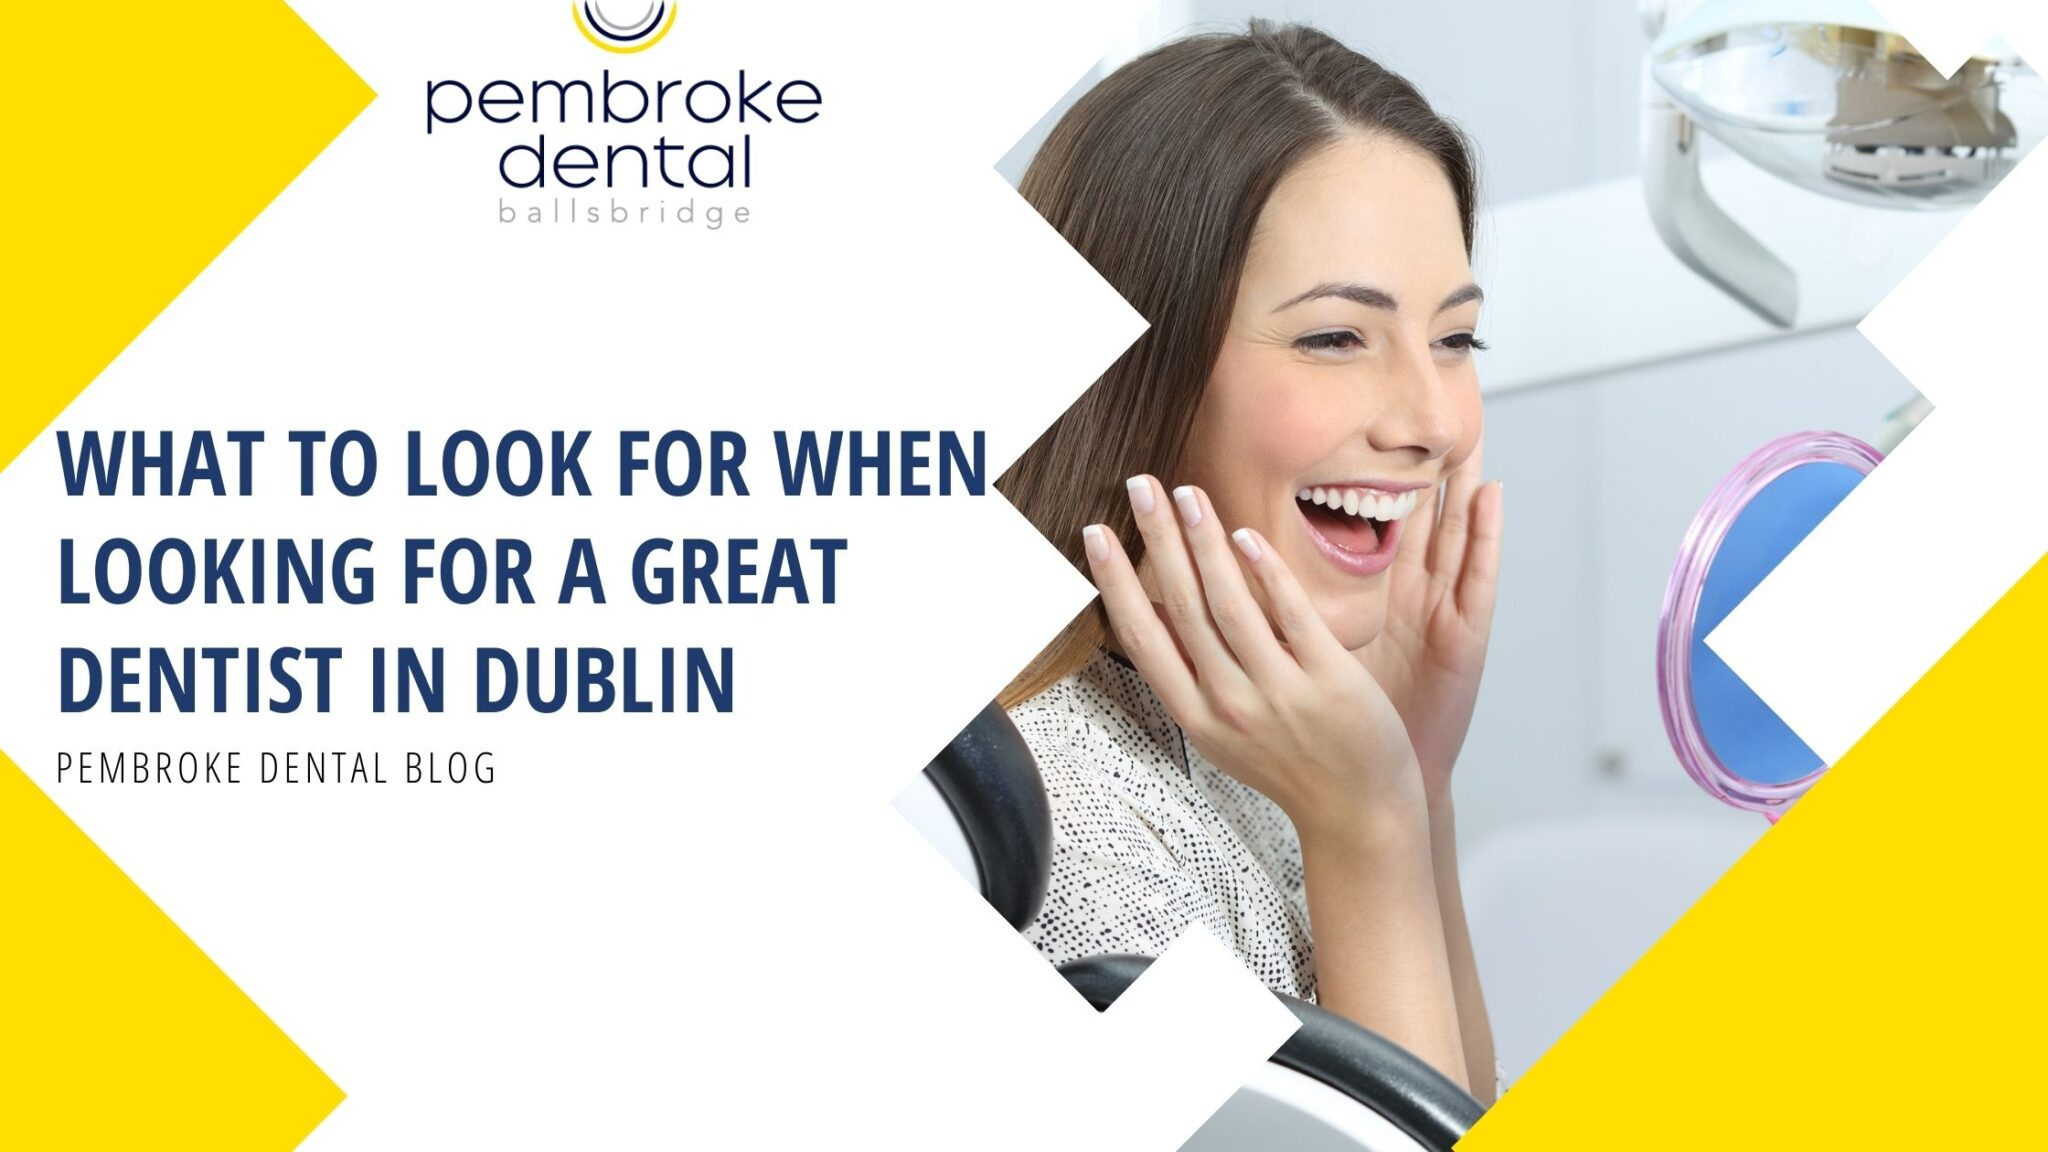 What to Look for When Looking for a Great Dentist in Dublin